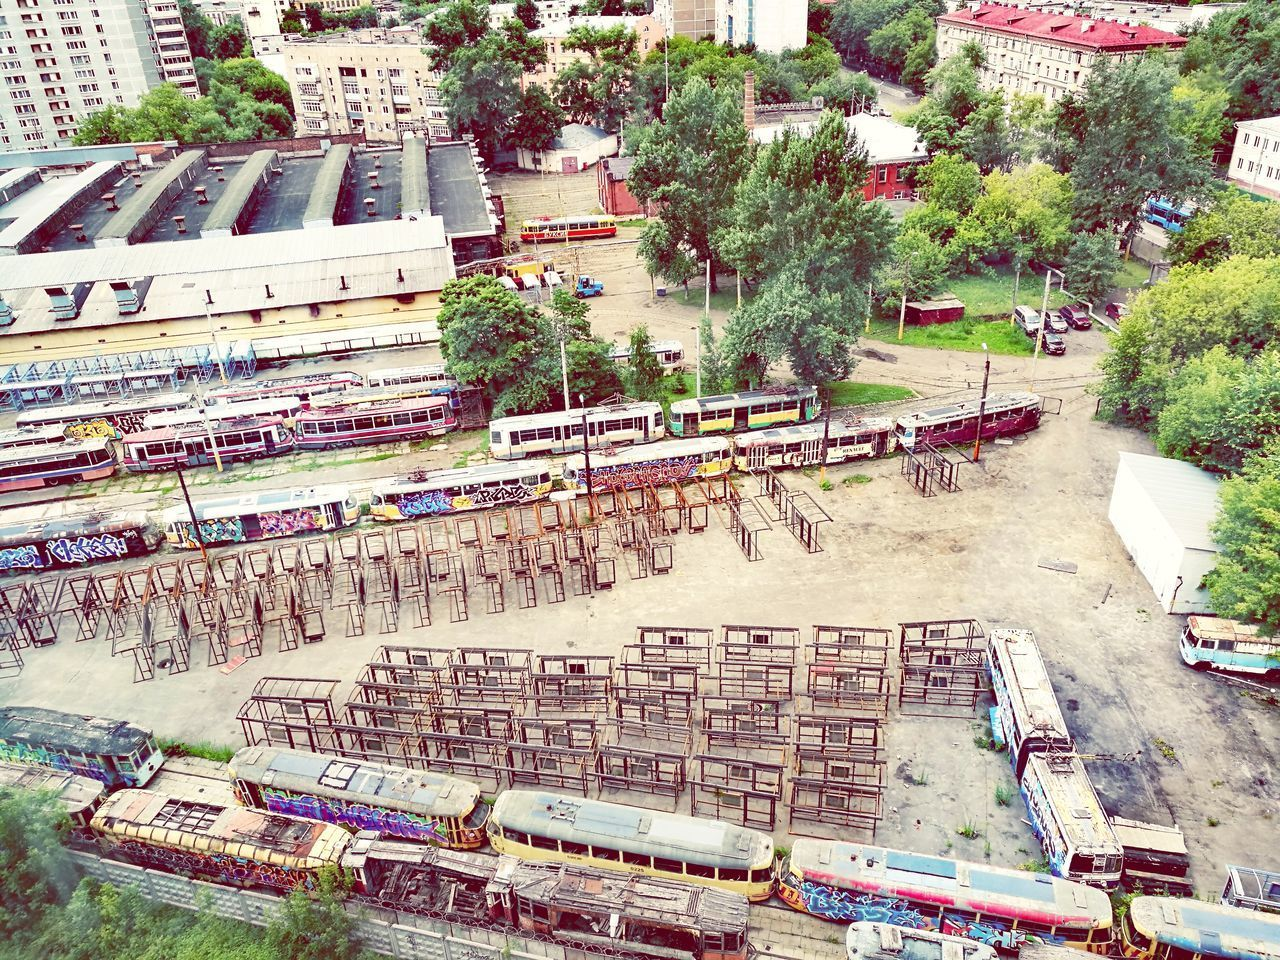 High Angle View Day Outdoors Architecture City Summer Industrial Industry building exterior Trams Transportation Tram Depo Retro EyeEm Renovation Maintenance Work Rail Transportation Railroad Track Railway трамвайное депо